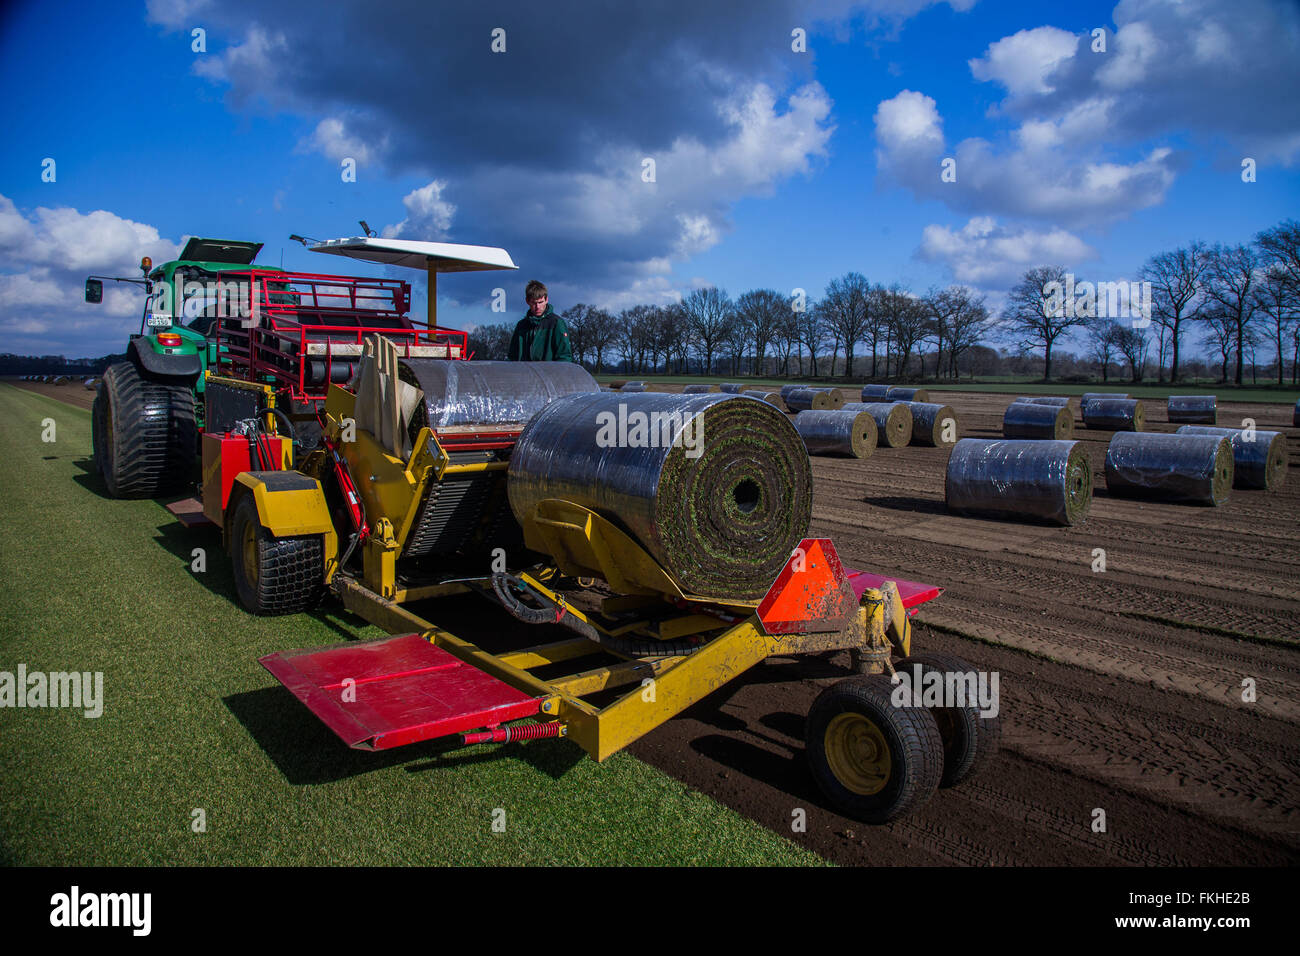 A staff member operates a special machine that peels and rolls up metres long sod lawn from the field near Alt Zachun - Stock Image